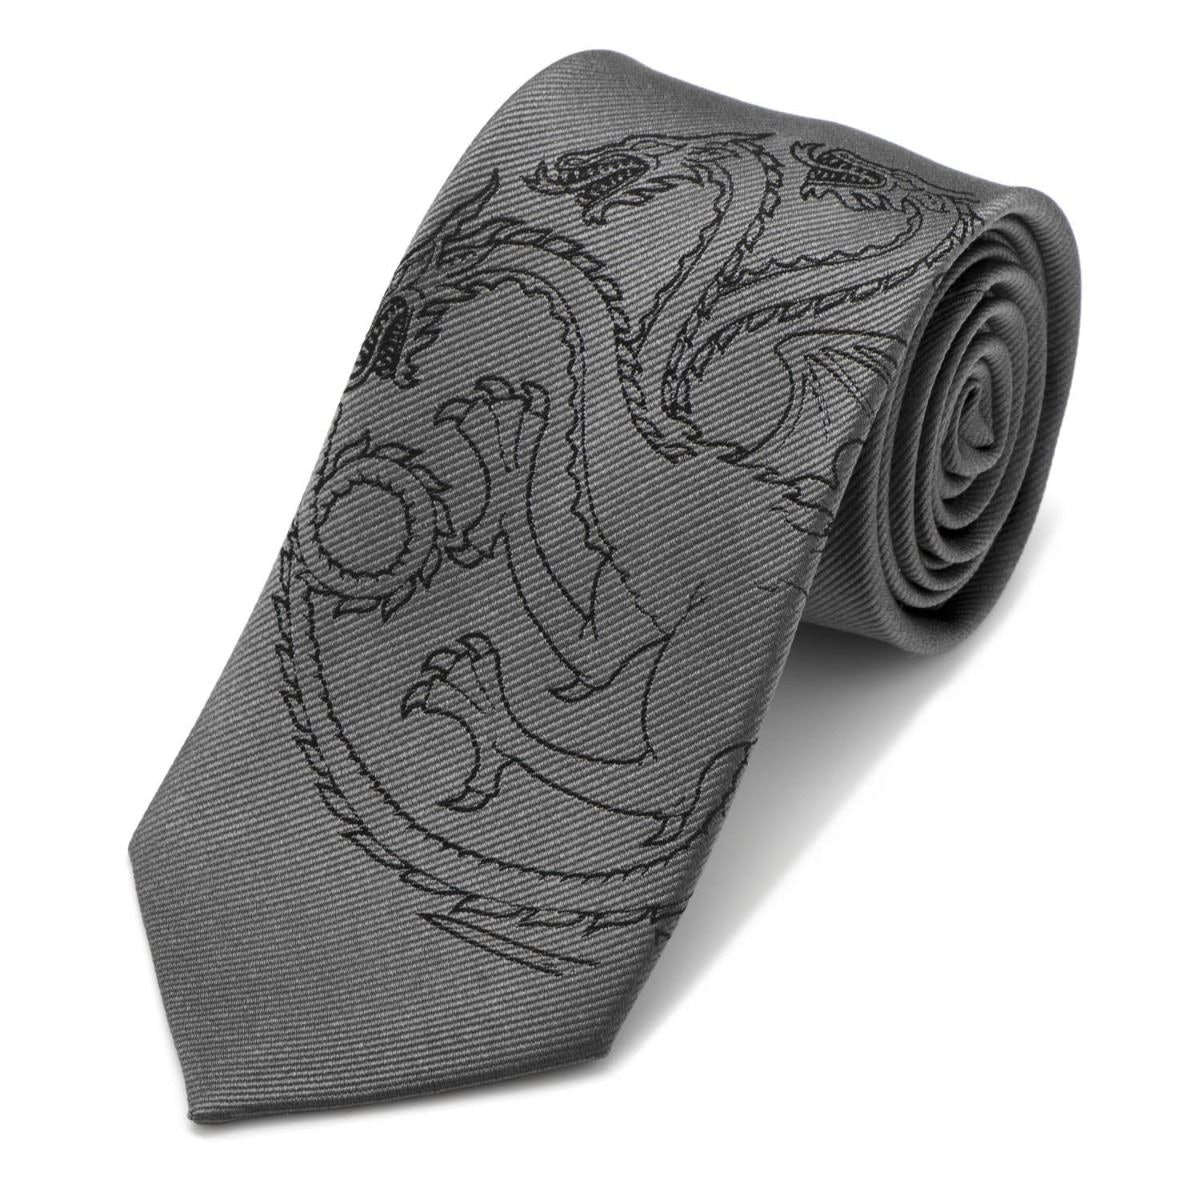 Game of Thrones House Targaryen Grey Silk Tie